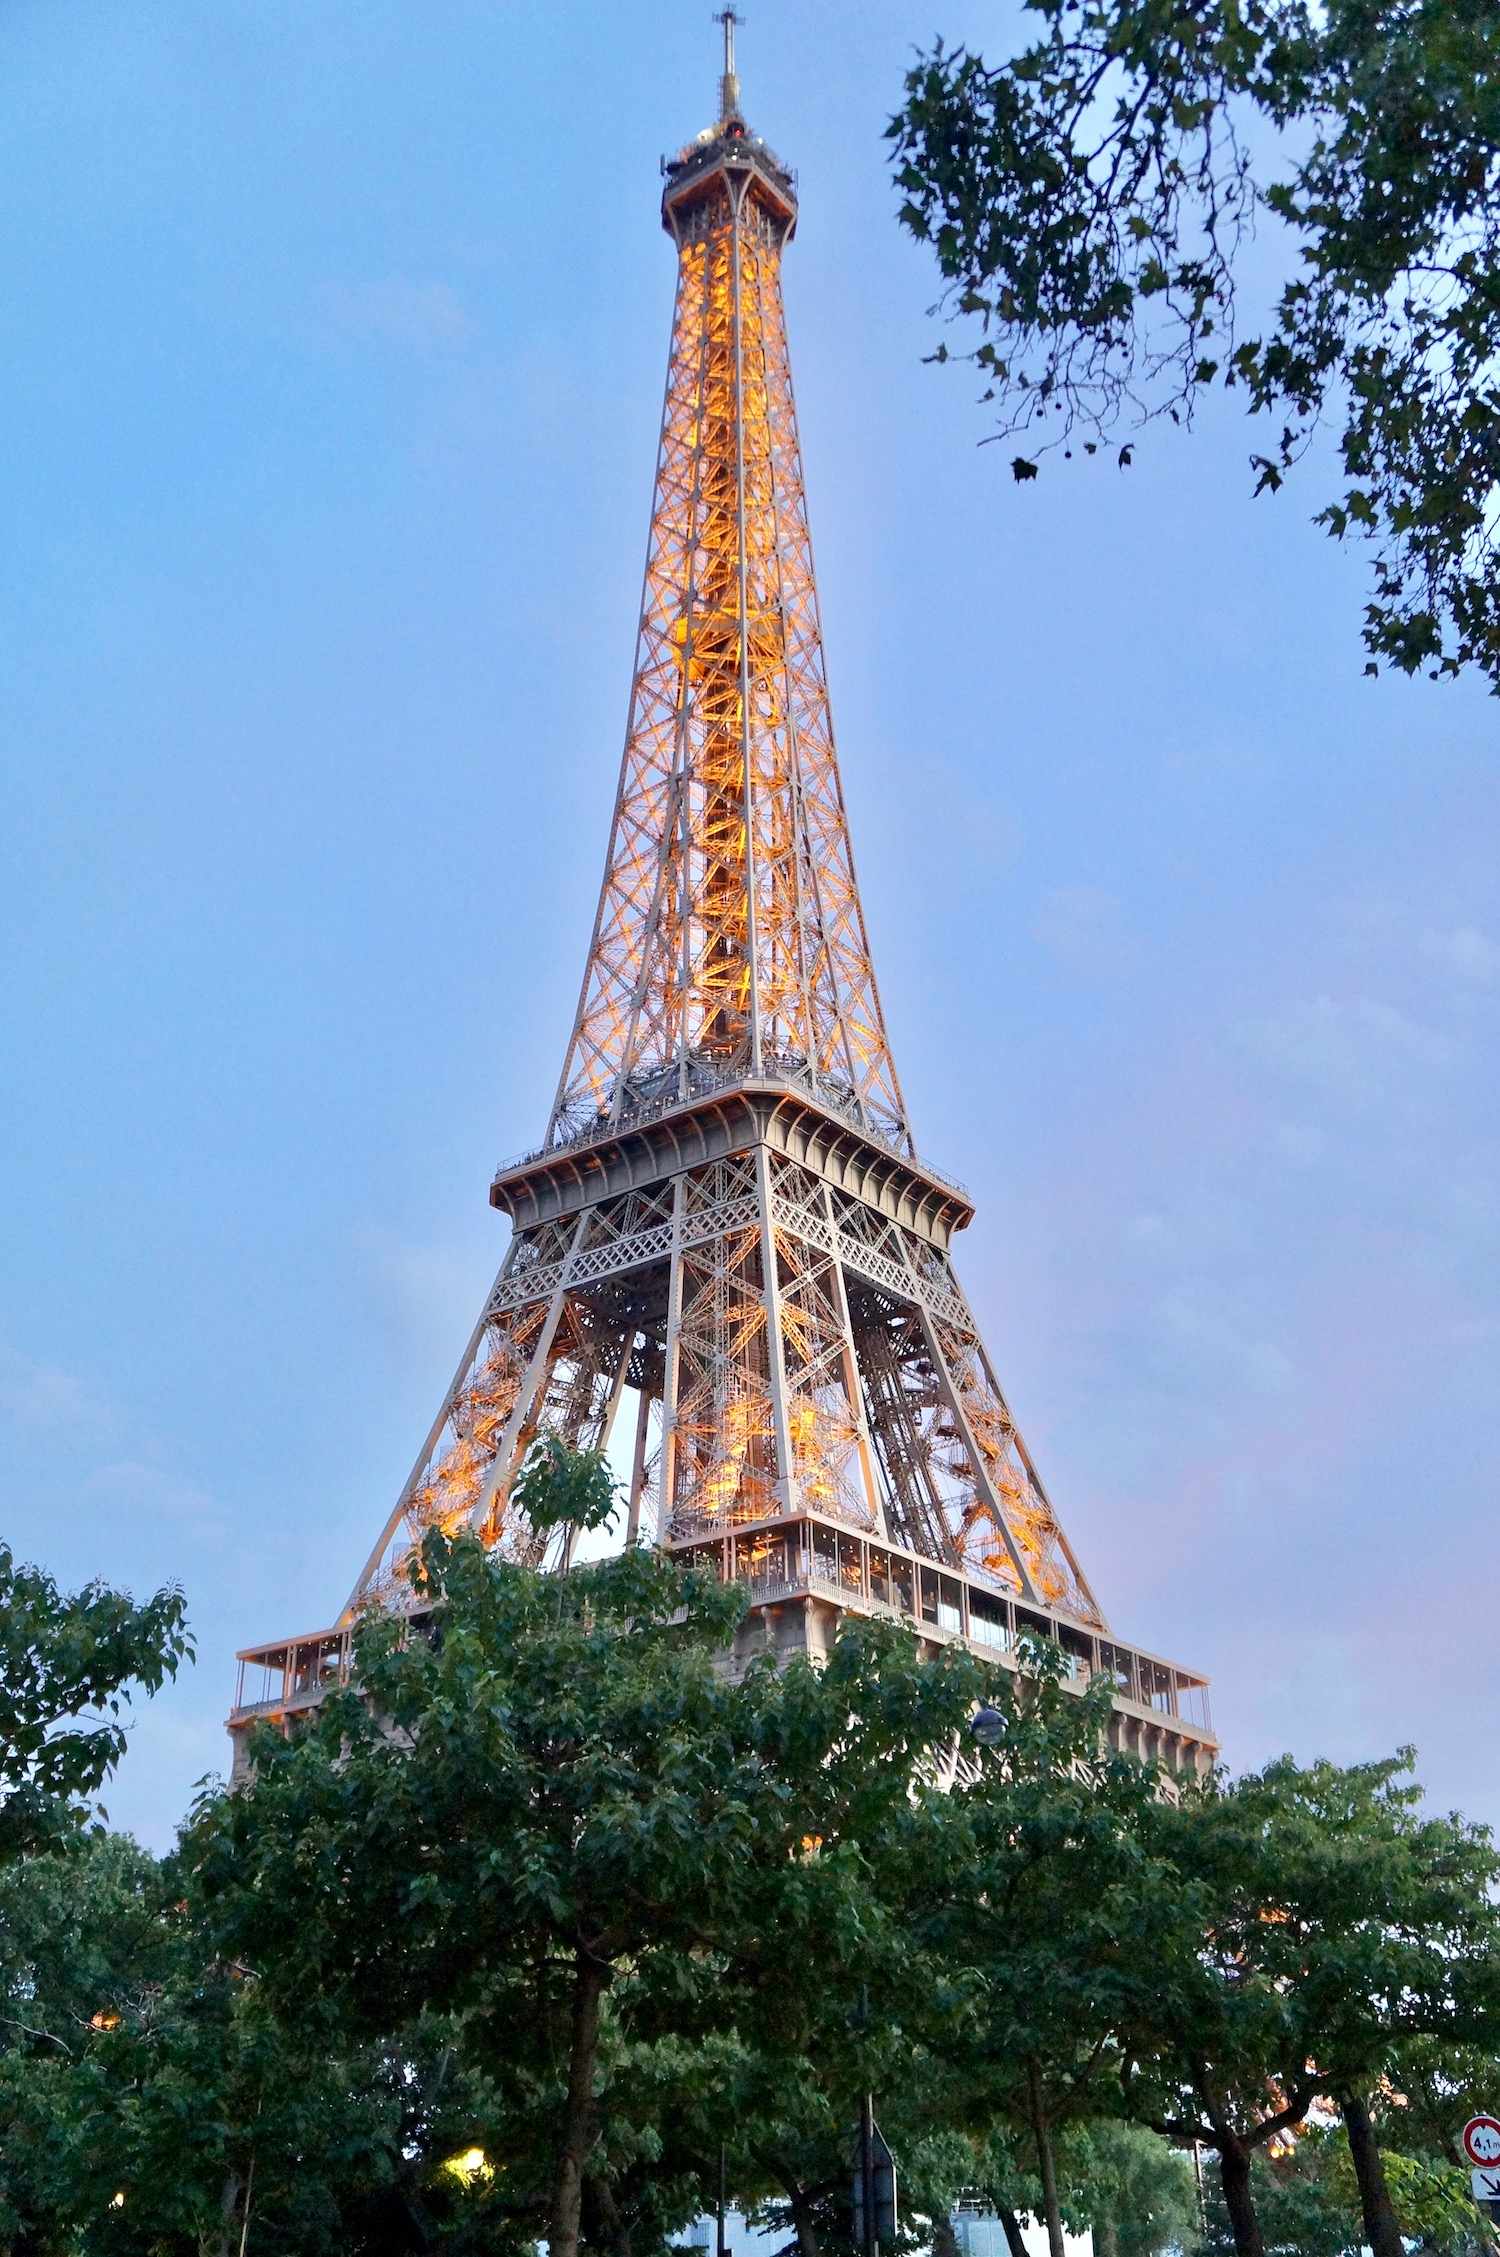 After climbing the Eiffel Tower